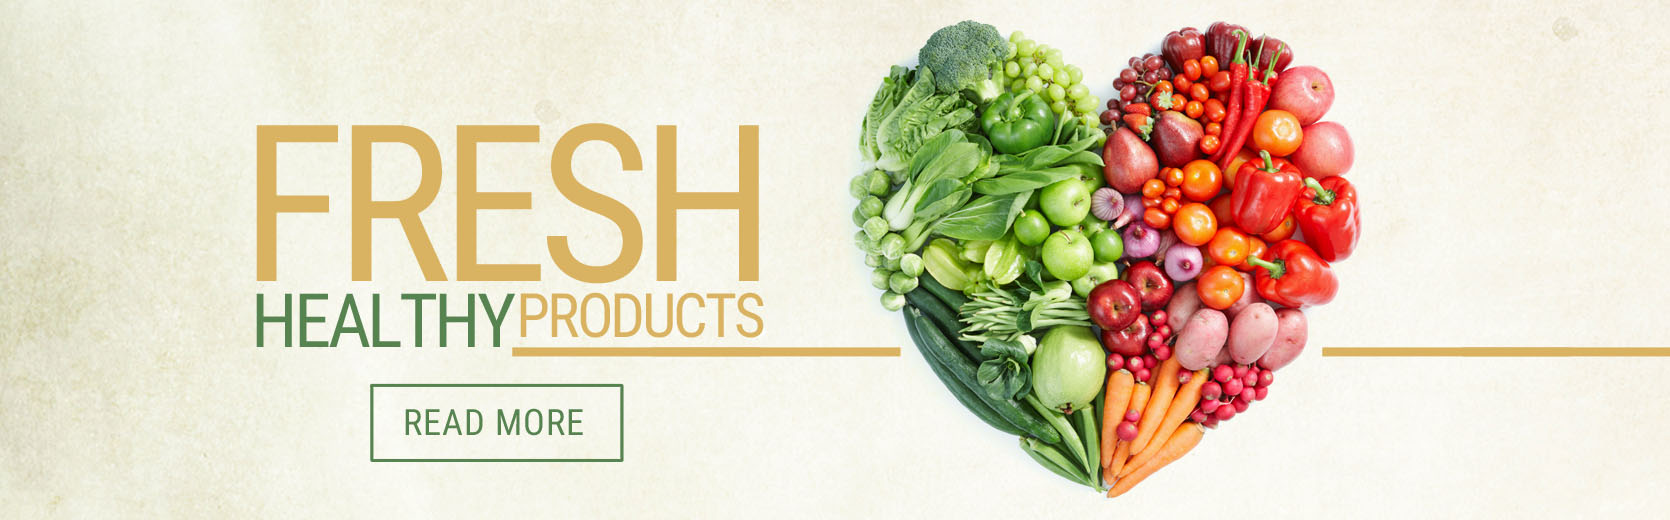 Weekly Ad Produce Cermak